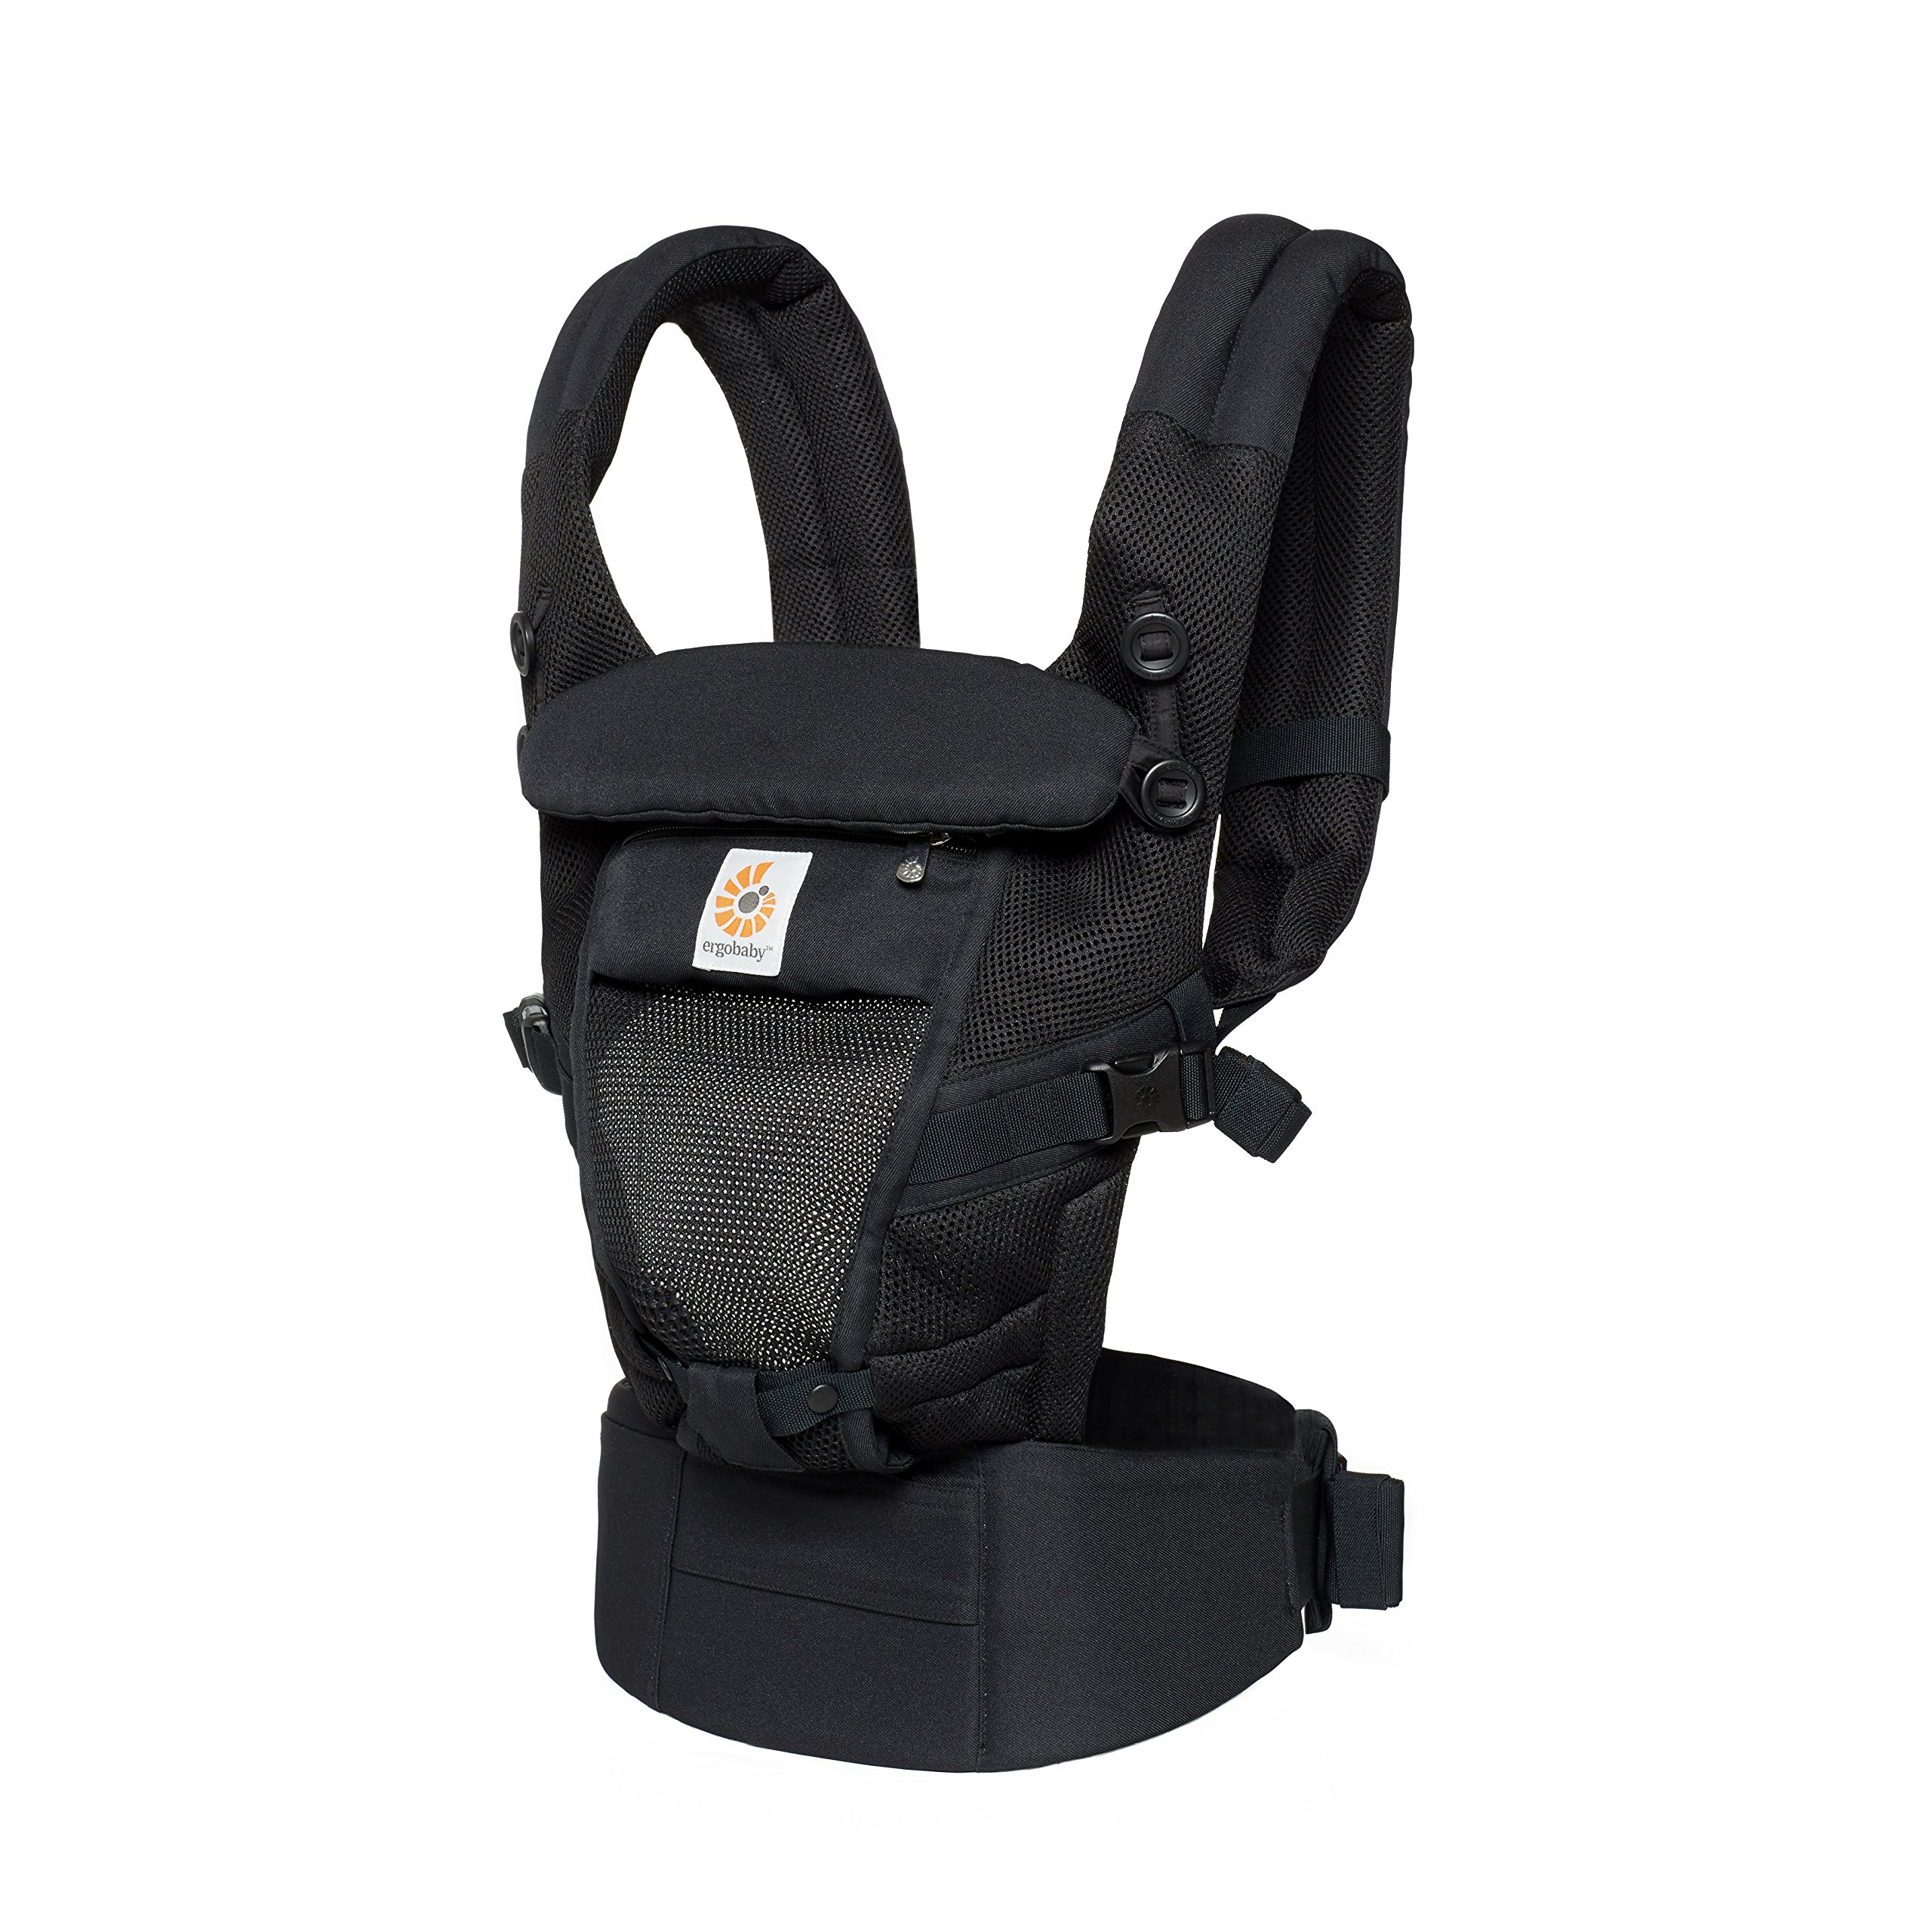 Ergobaby Adapt Baby Carrier, Infant To Toddler Carrier, Pearl Grey, Cool Air Mesh, Multi-Position, Onyx Black